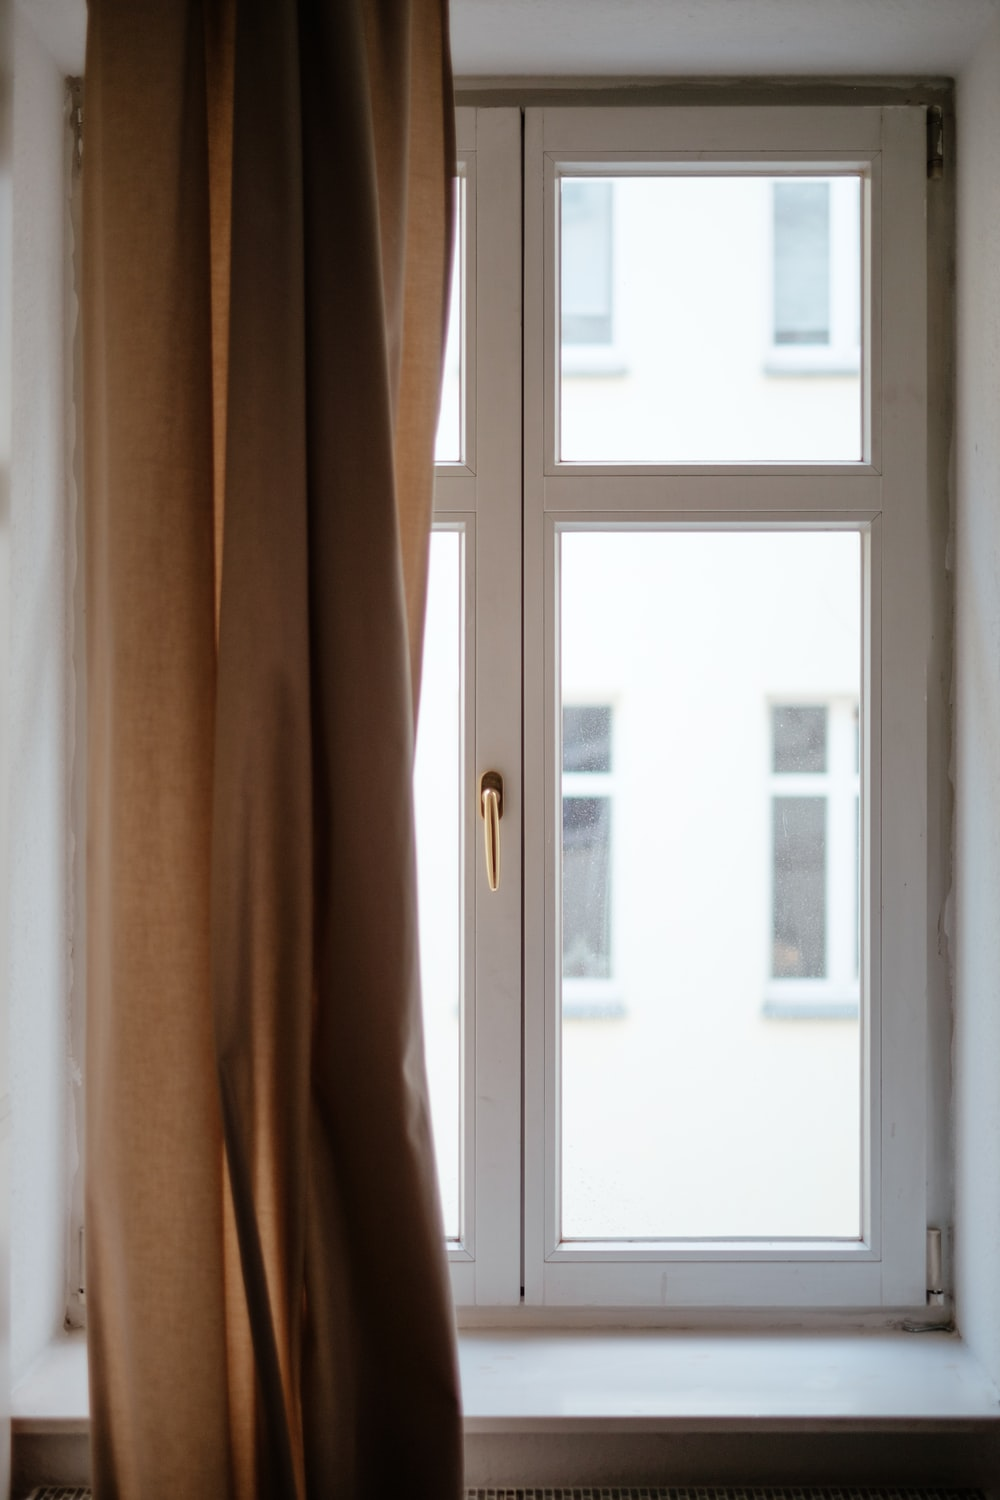 Best 100 window images download free pictures on unsplash for Finestra immagini